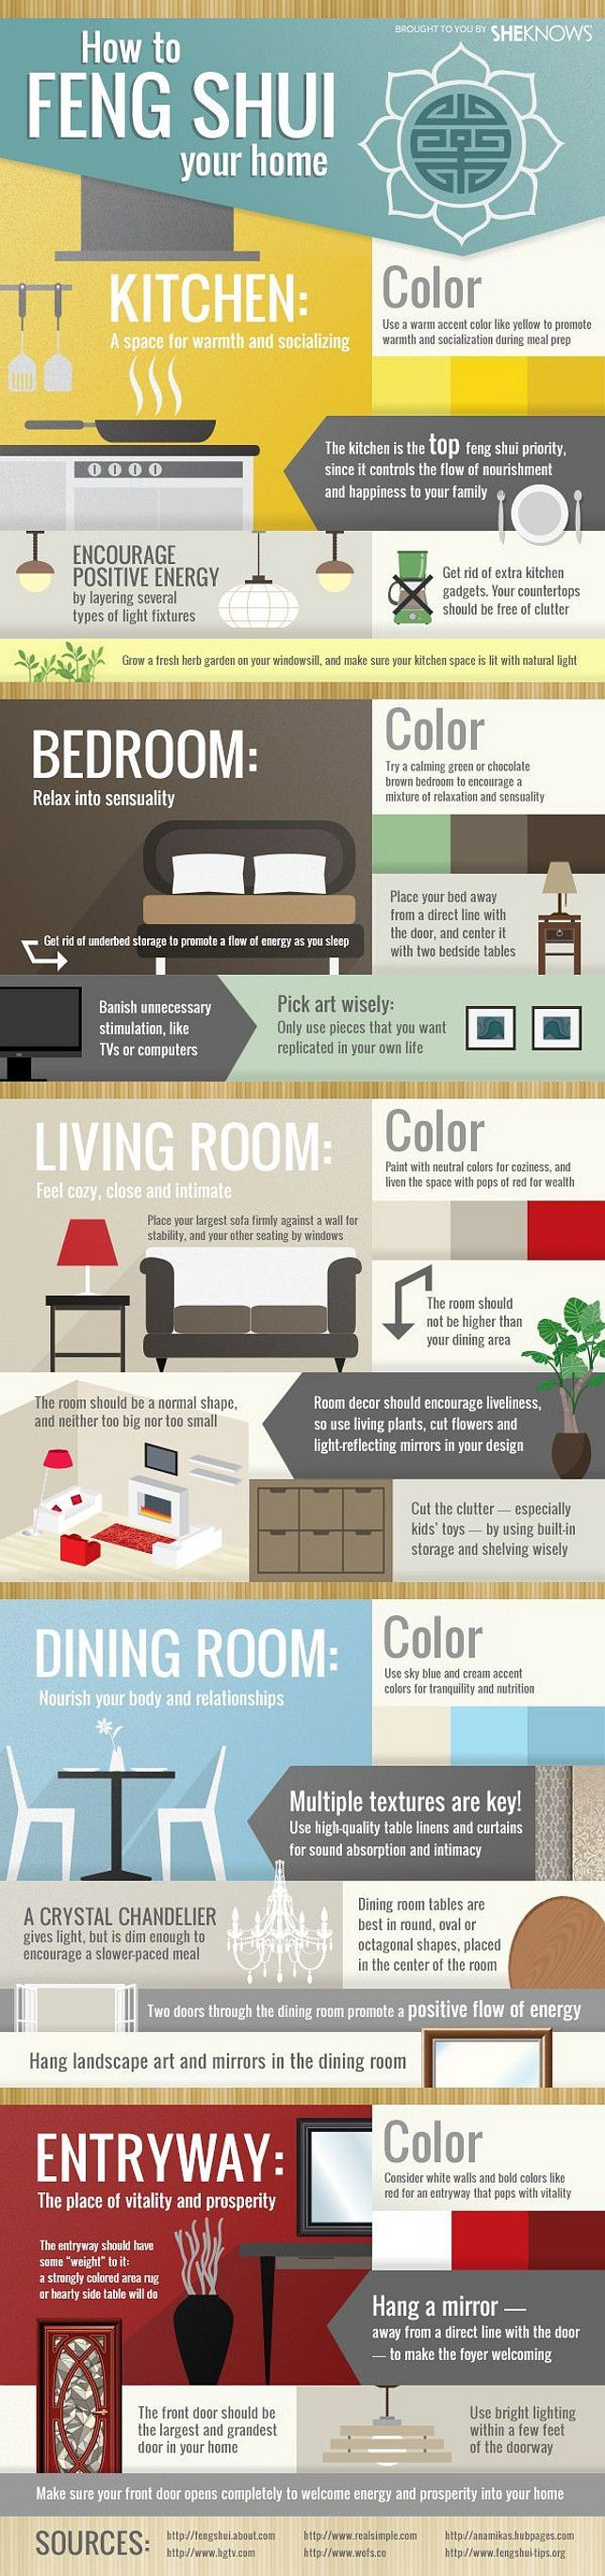 Feng shui Decorating Tips. A room-by-room guide to feng shui your home. #fengshui #fengshuiDecor #fengshuiInteriors Via She Knows.